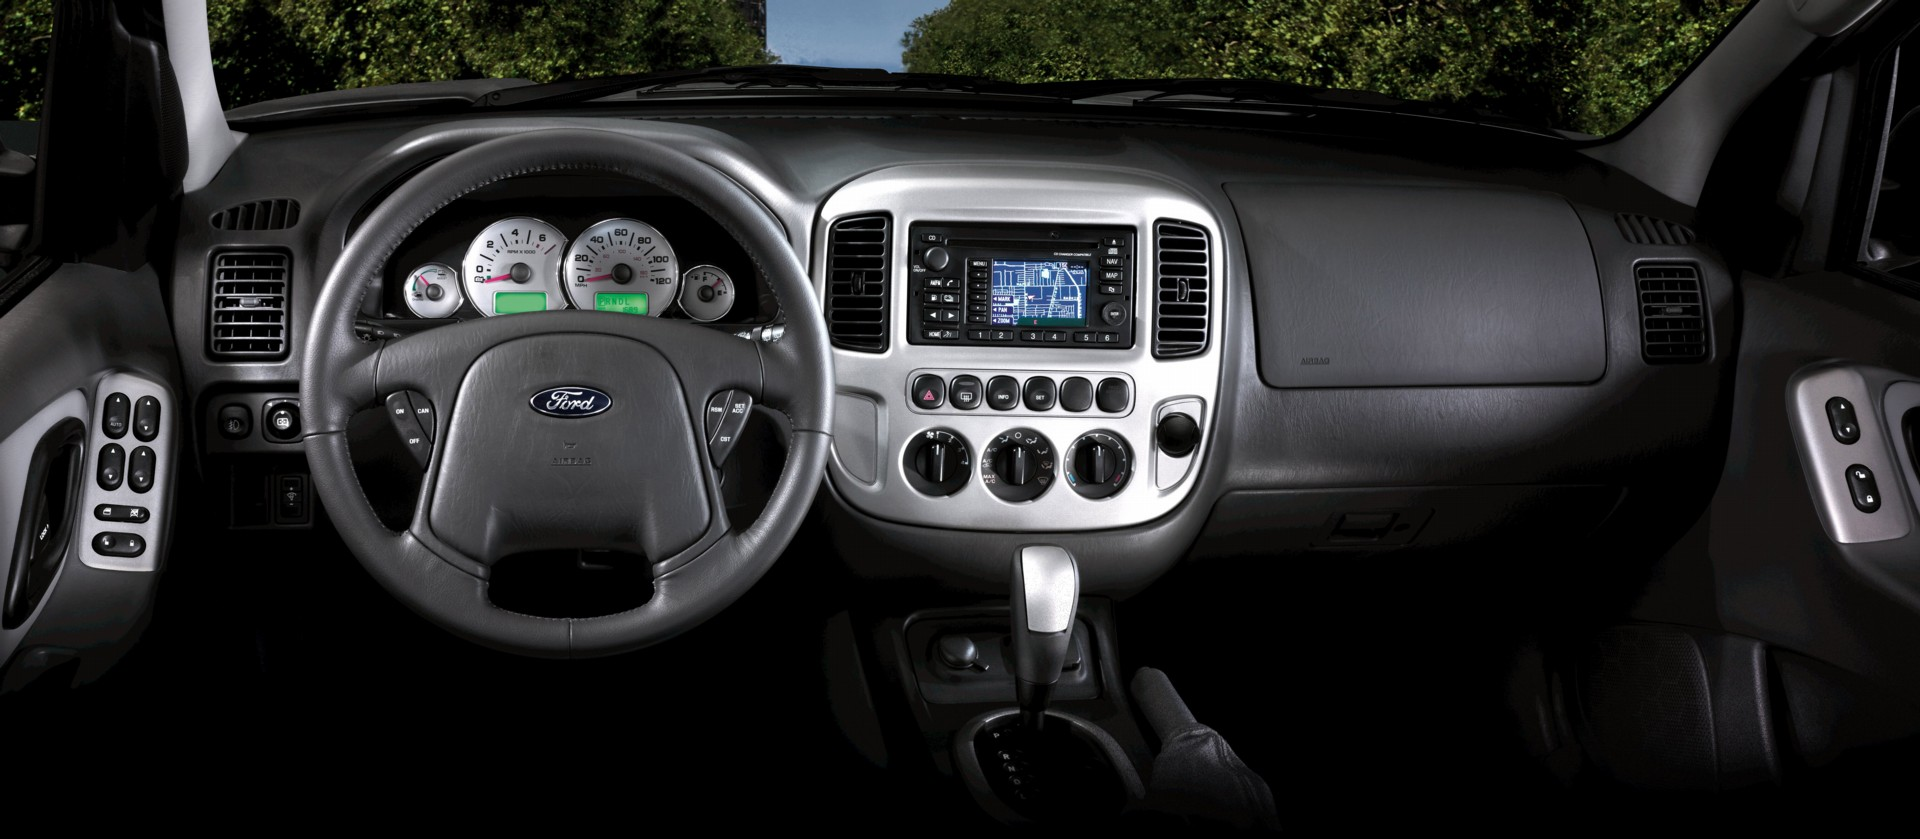 2007 Ford Escape Hybrid #16